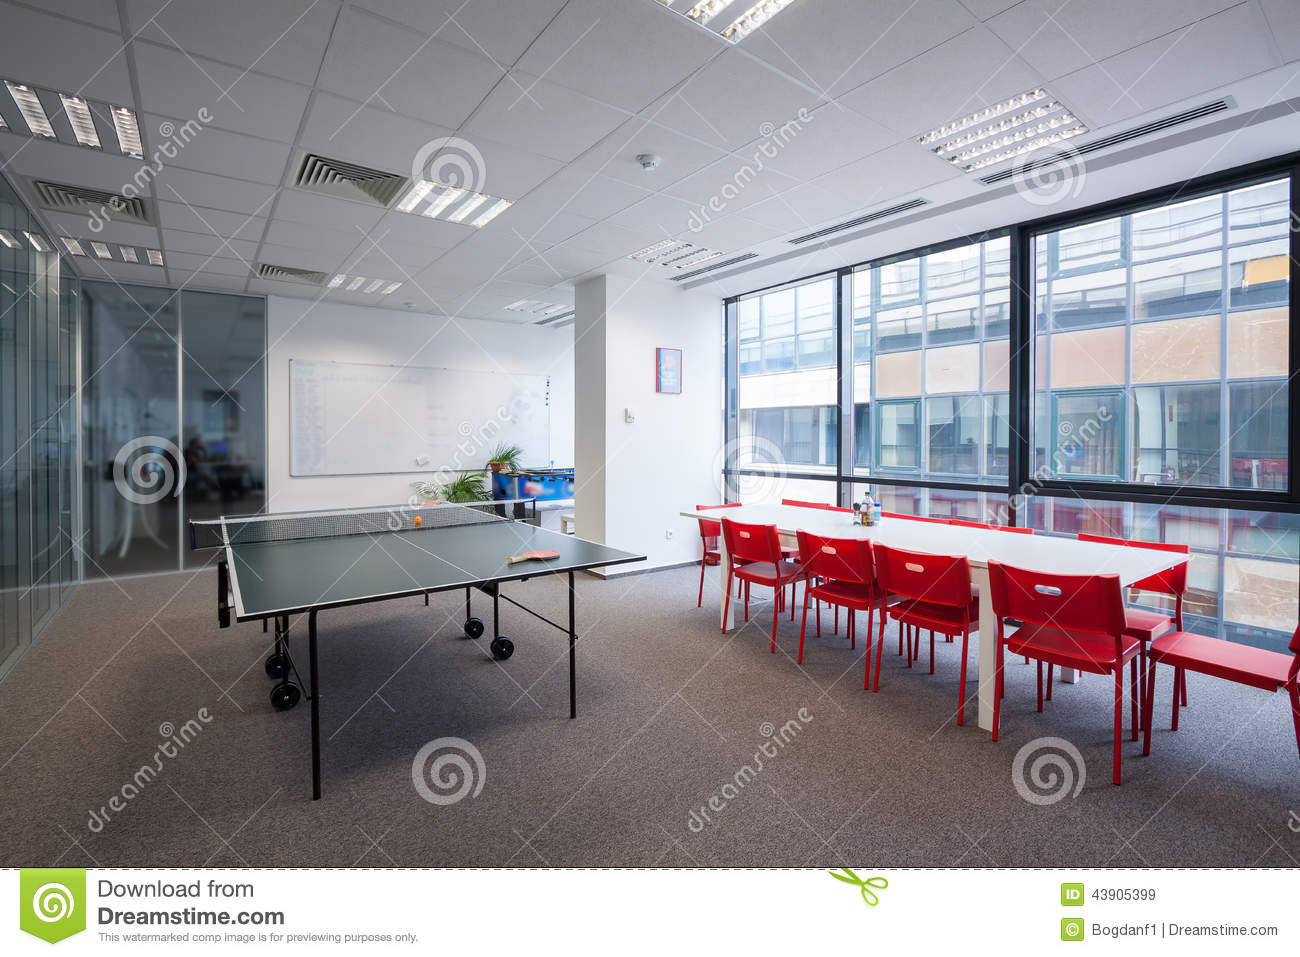 Office Room With Table, Chairs And Ping Pong Table